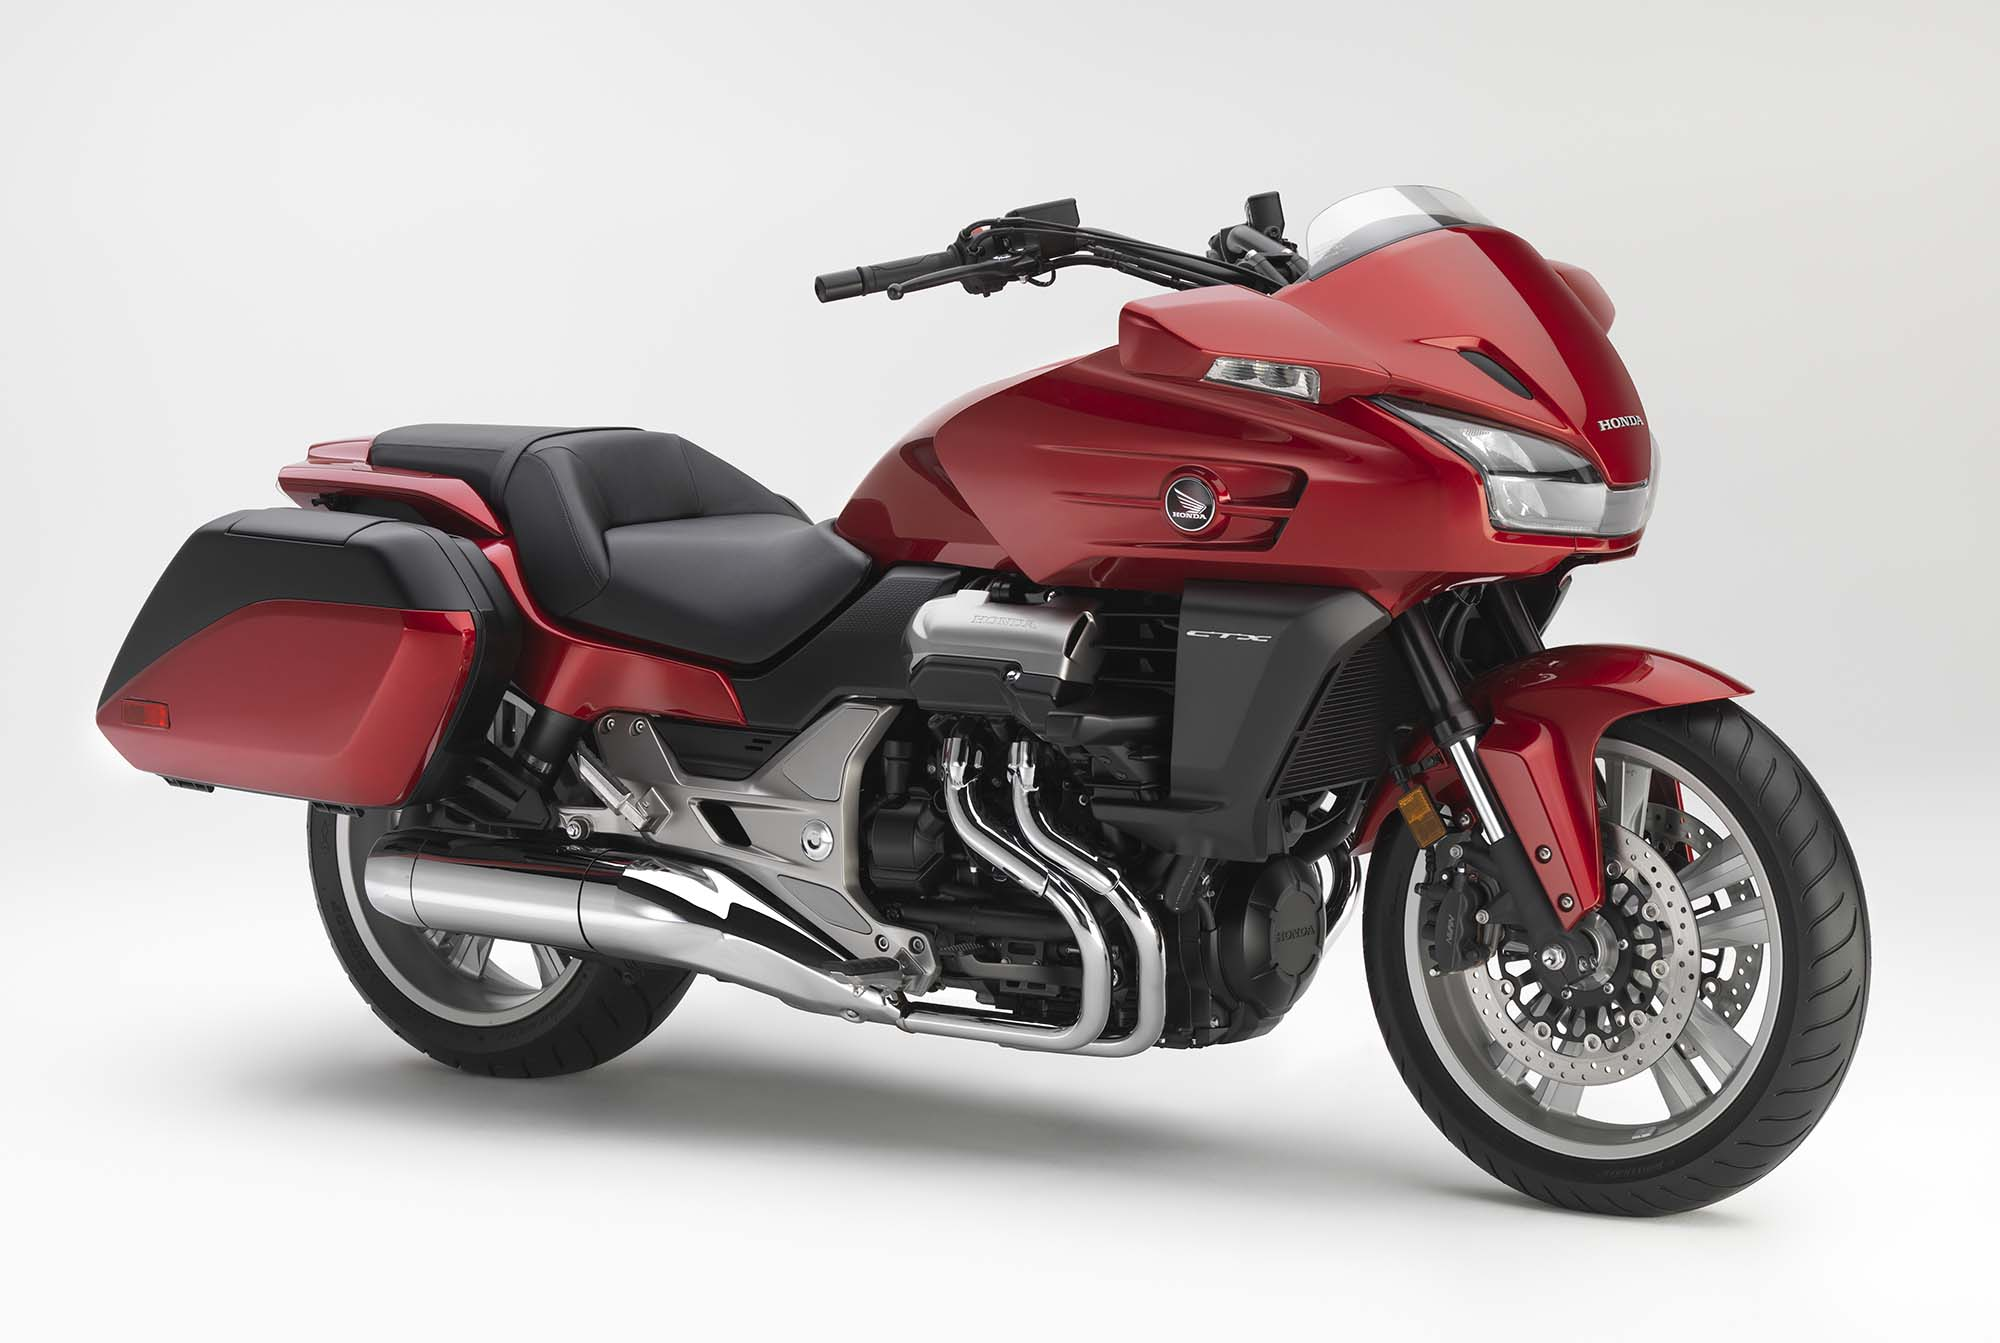 2014 Honda CTX1300 — Not Your Father's Bagger